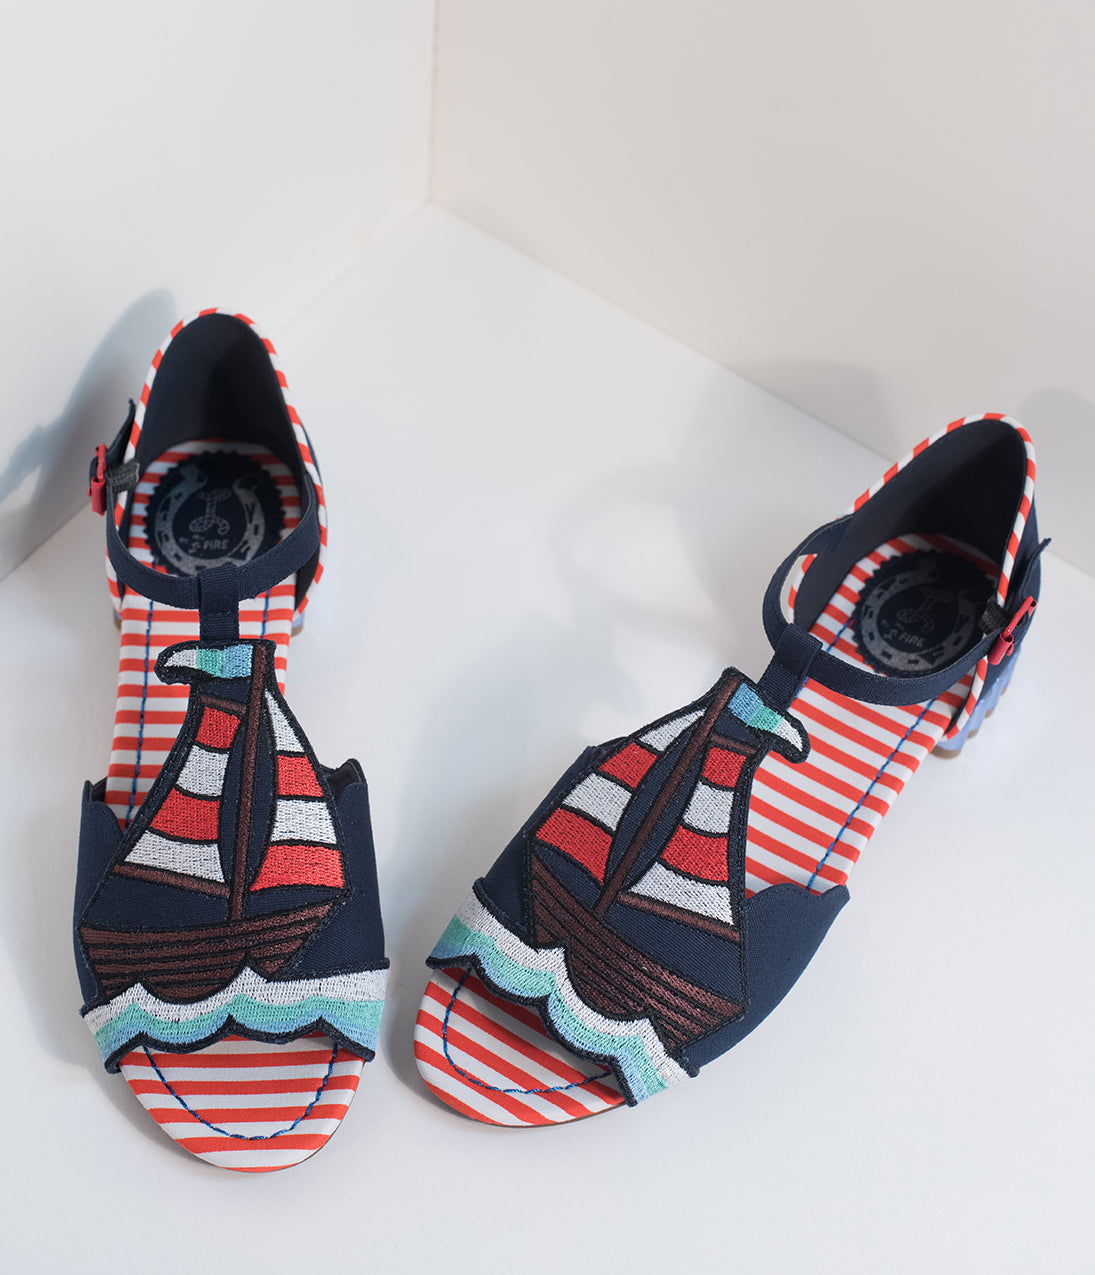 1950s Style Shoes Miss L Fire Navy Blue Nautical Peep Toe Regatta T-Strap Sandals $120.00 AT vintagedancer.com